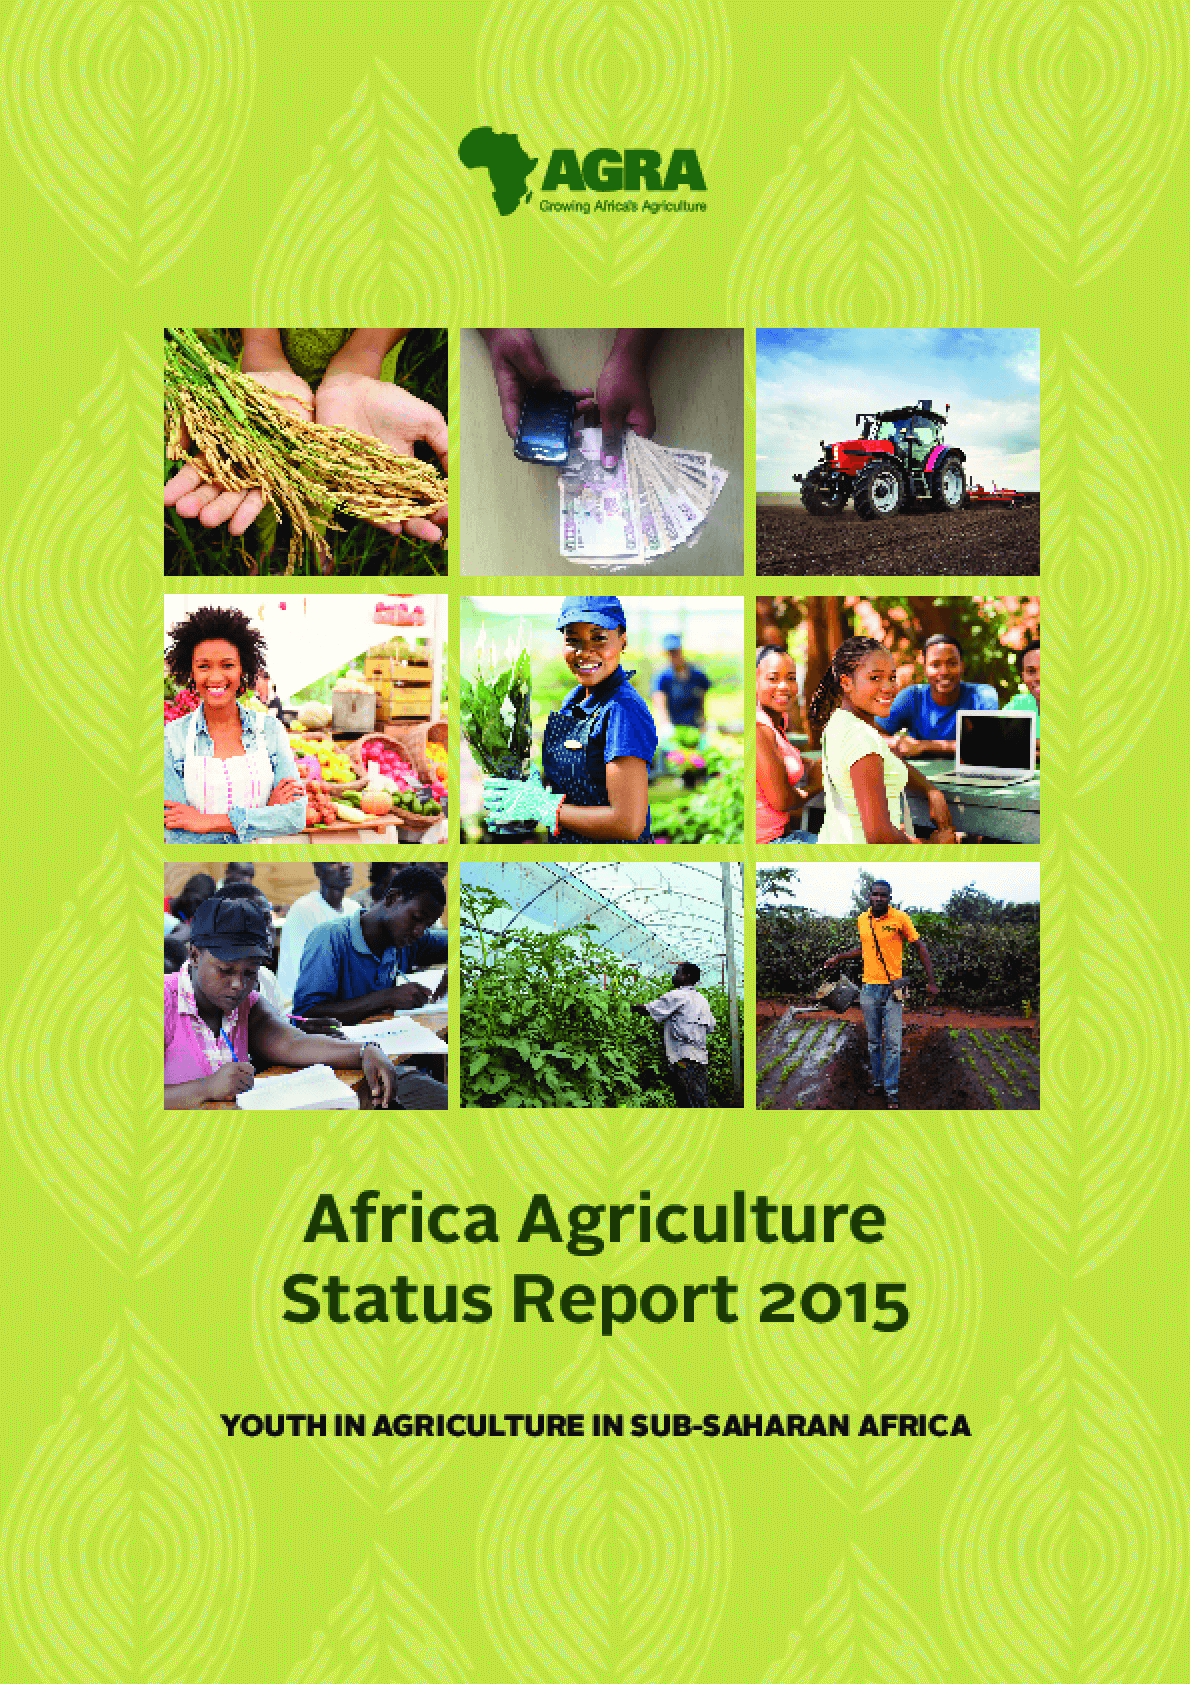 Africa Agriculture Status Report 2015: Youth in Agriculture in Sub-Saharan Africa